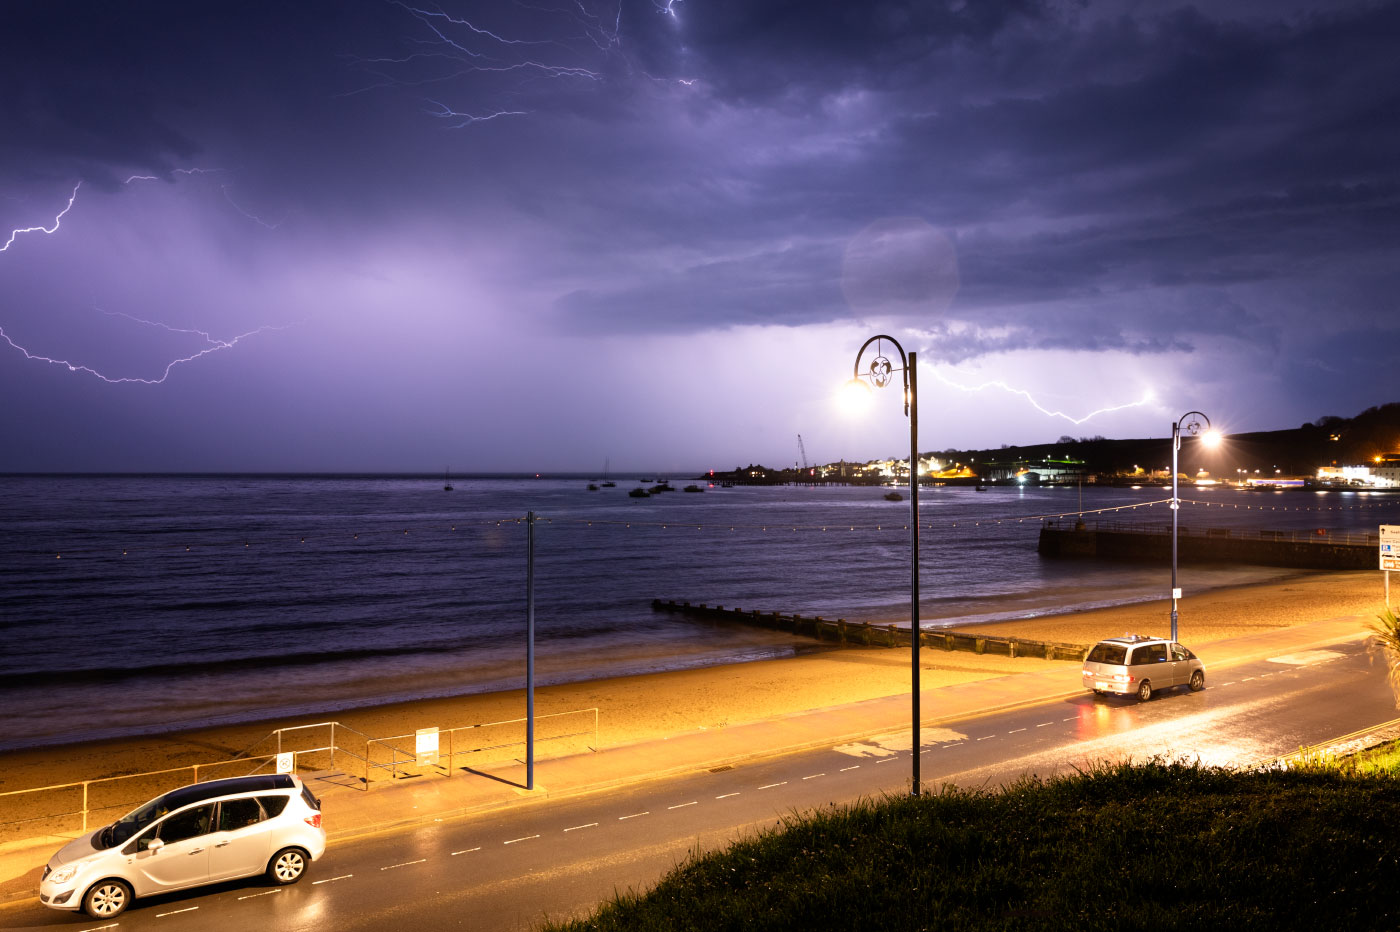 Lightning over the bay from Sandpit Field